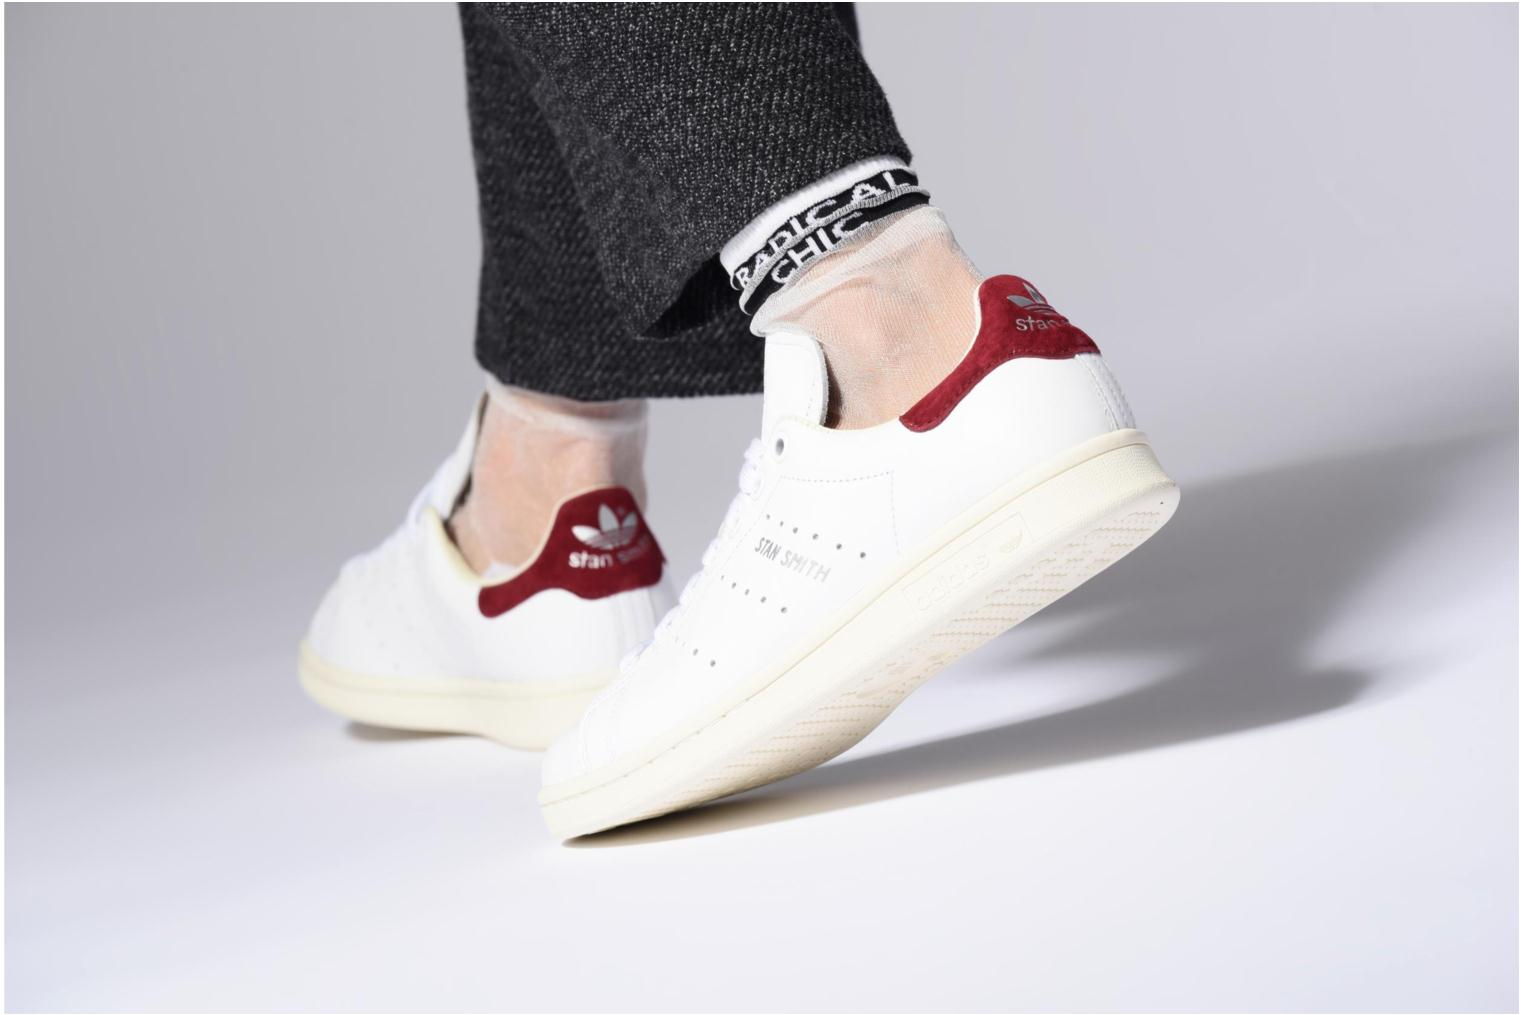 Stan Smith W Ftwbla/Ftwbla/Blacas